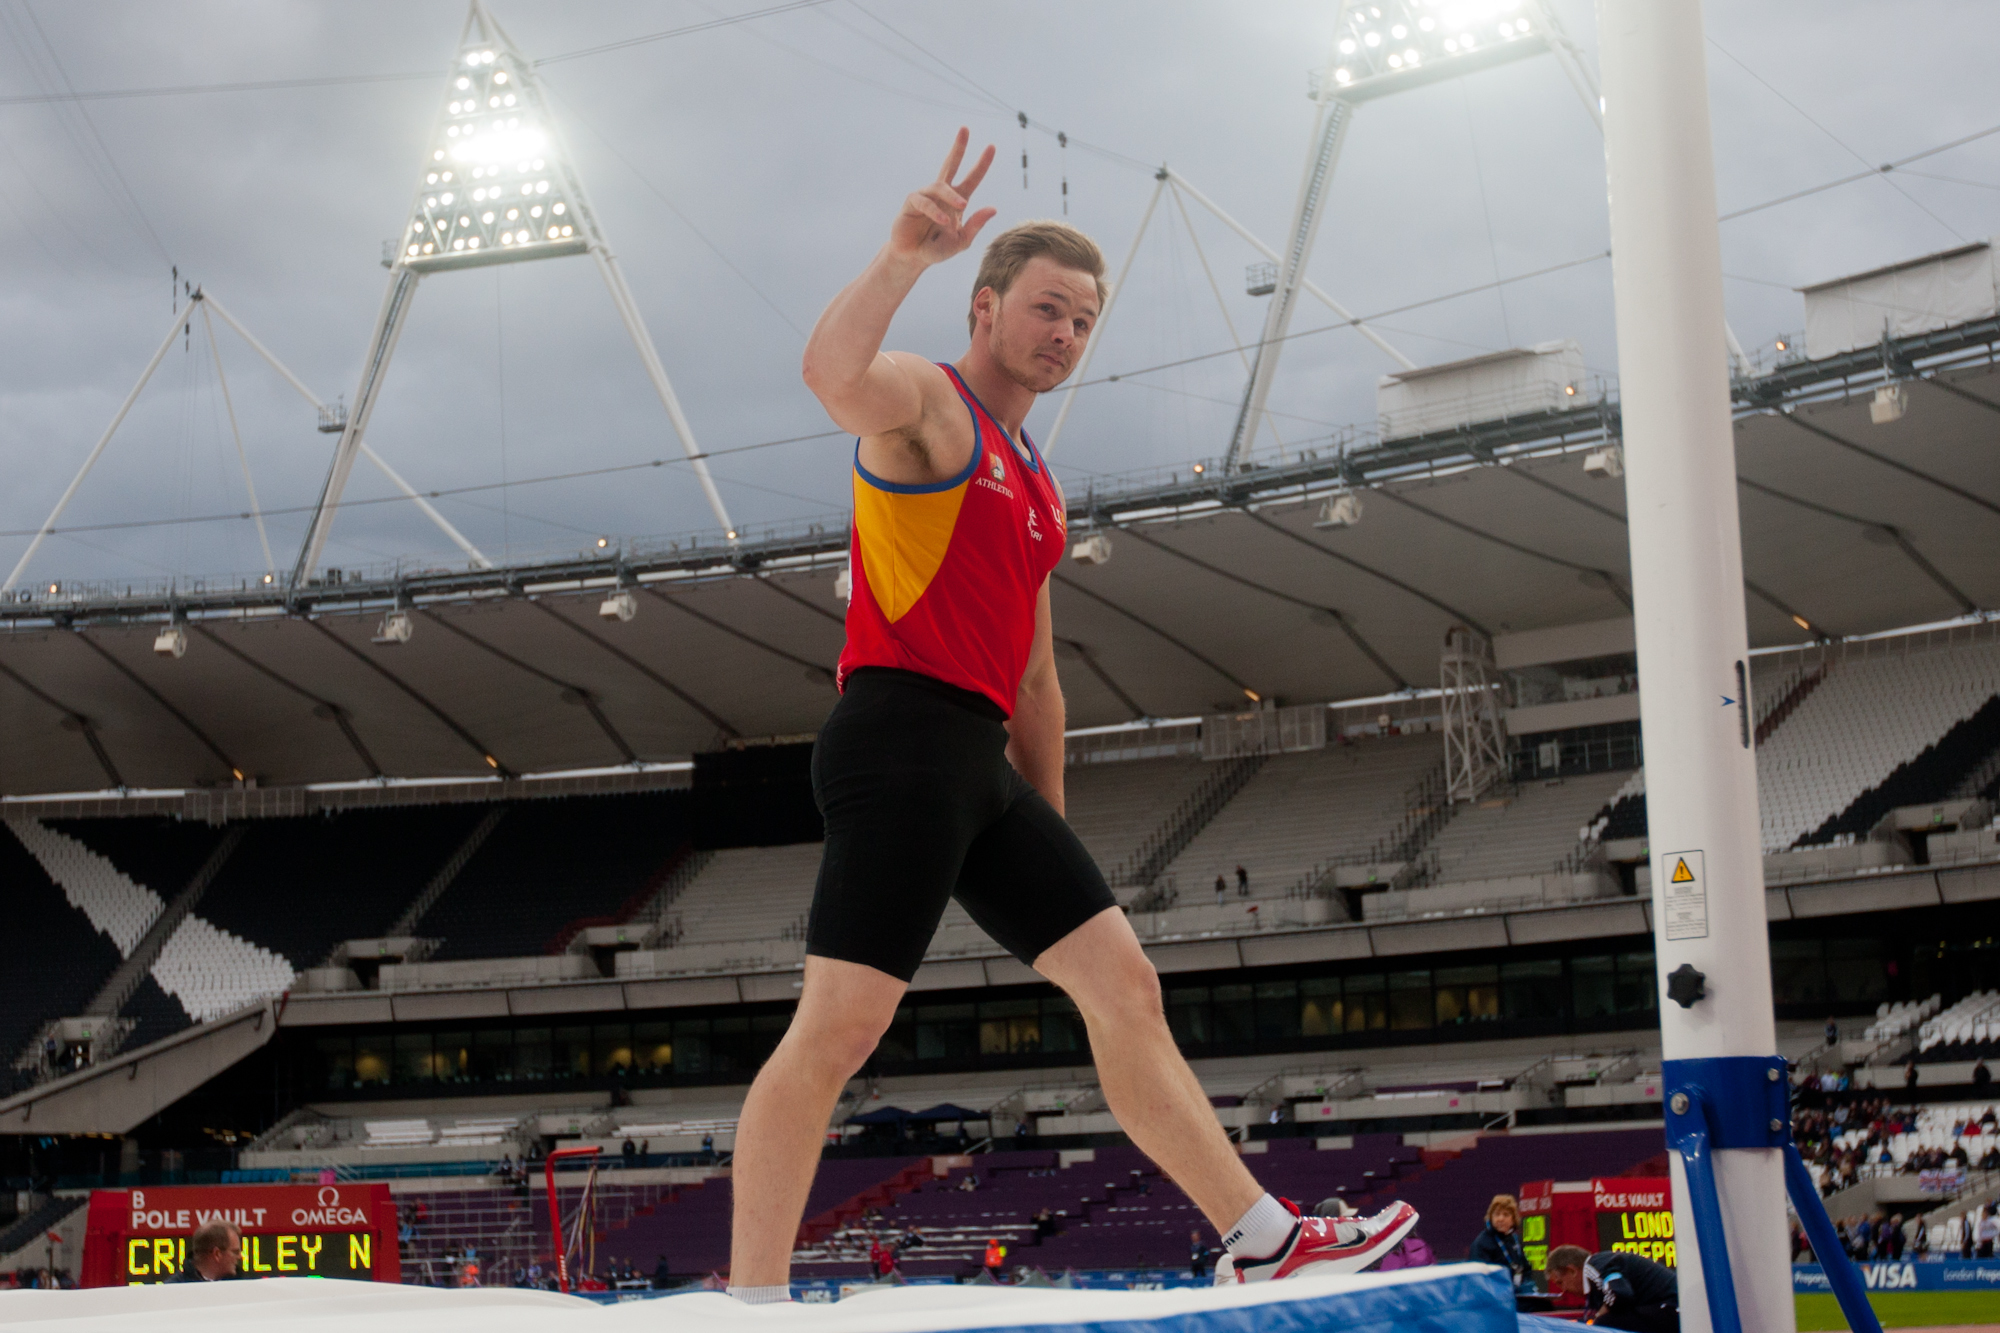 Stourbridge's Nick Cruchley claimed pole vault gold (4310454)